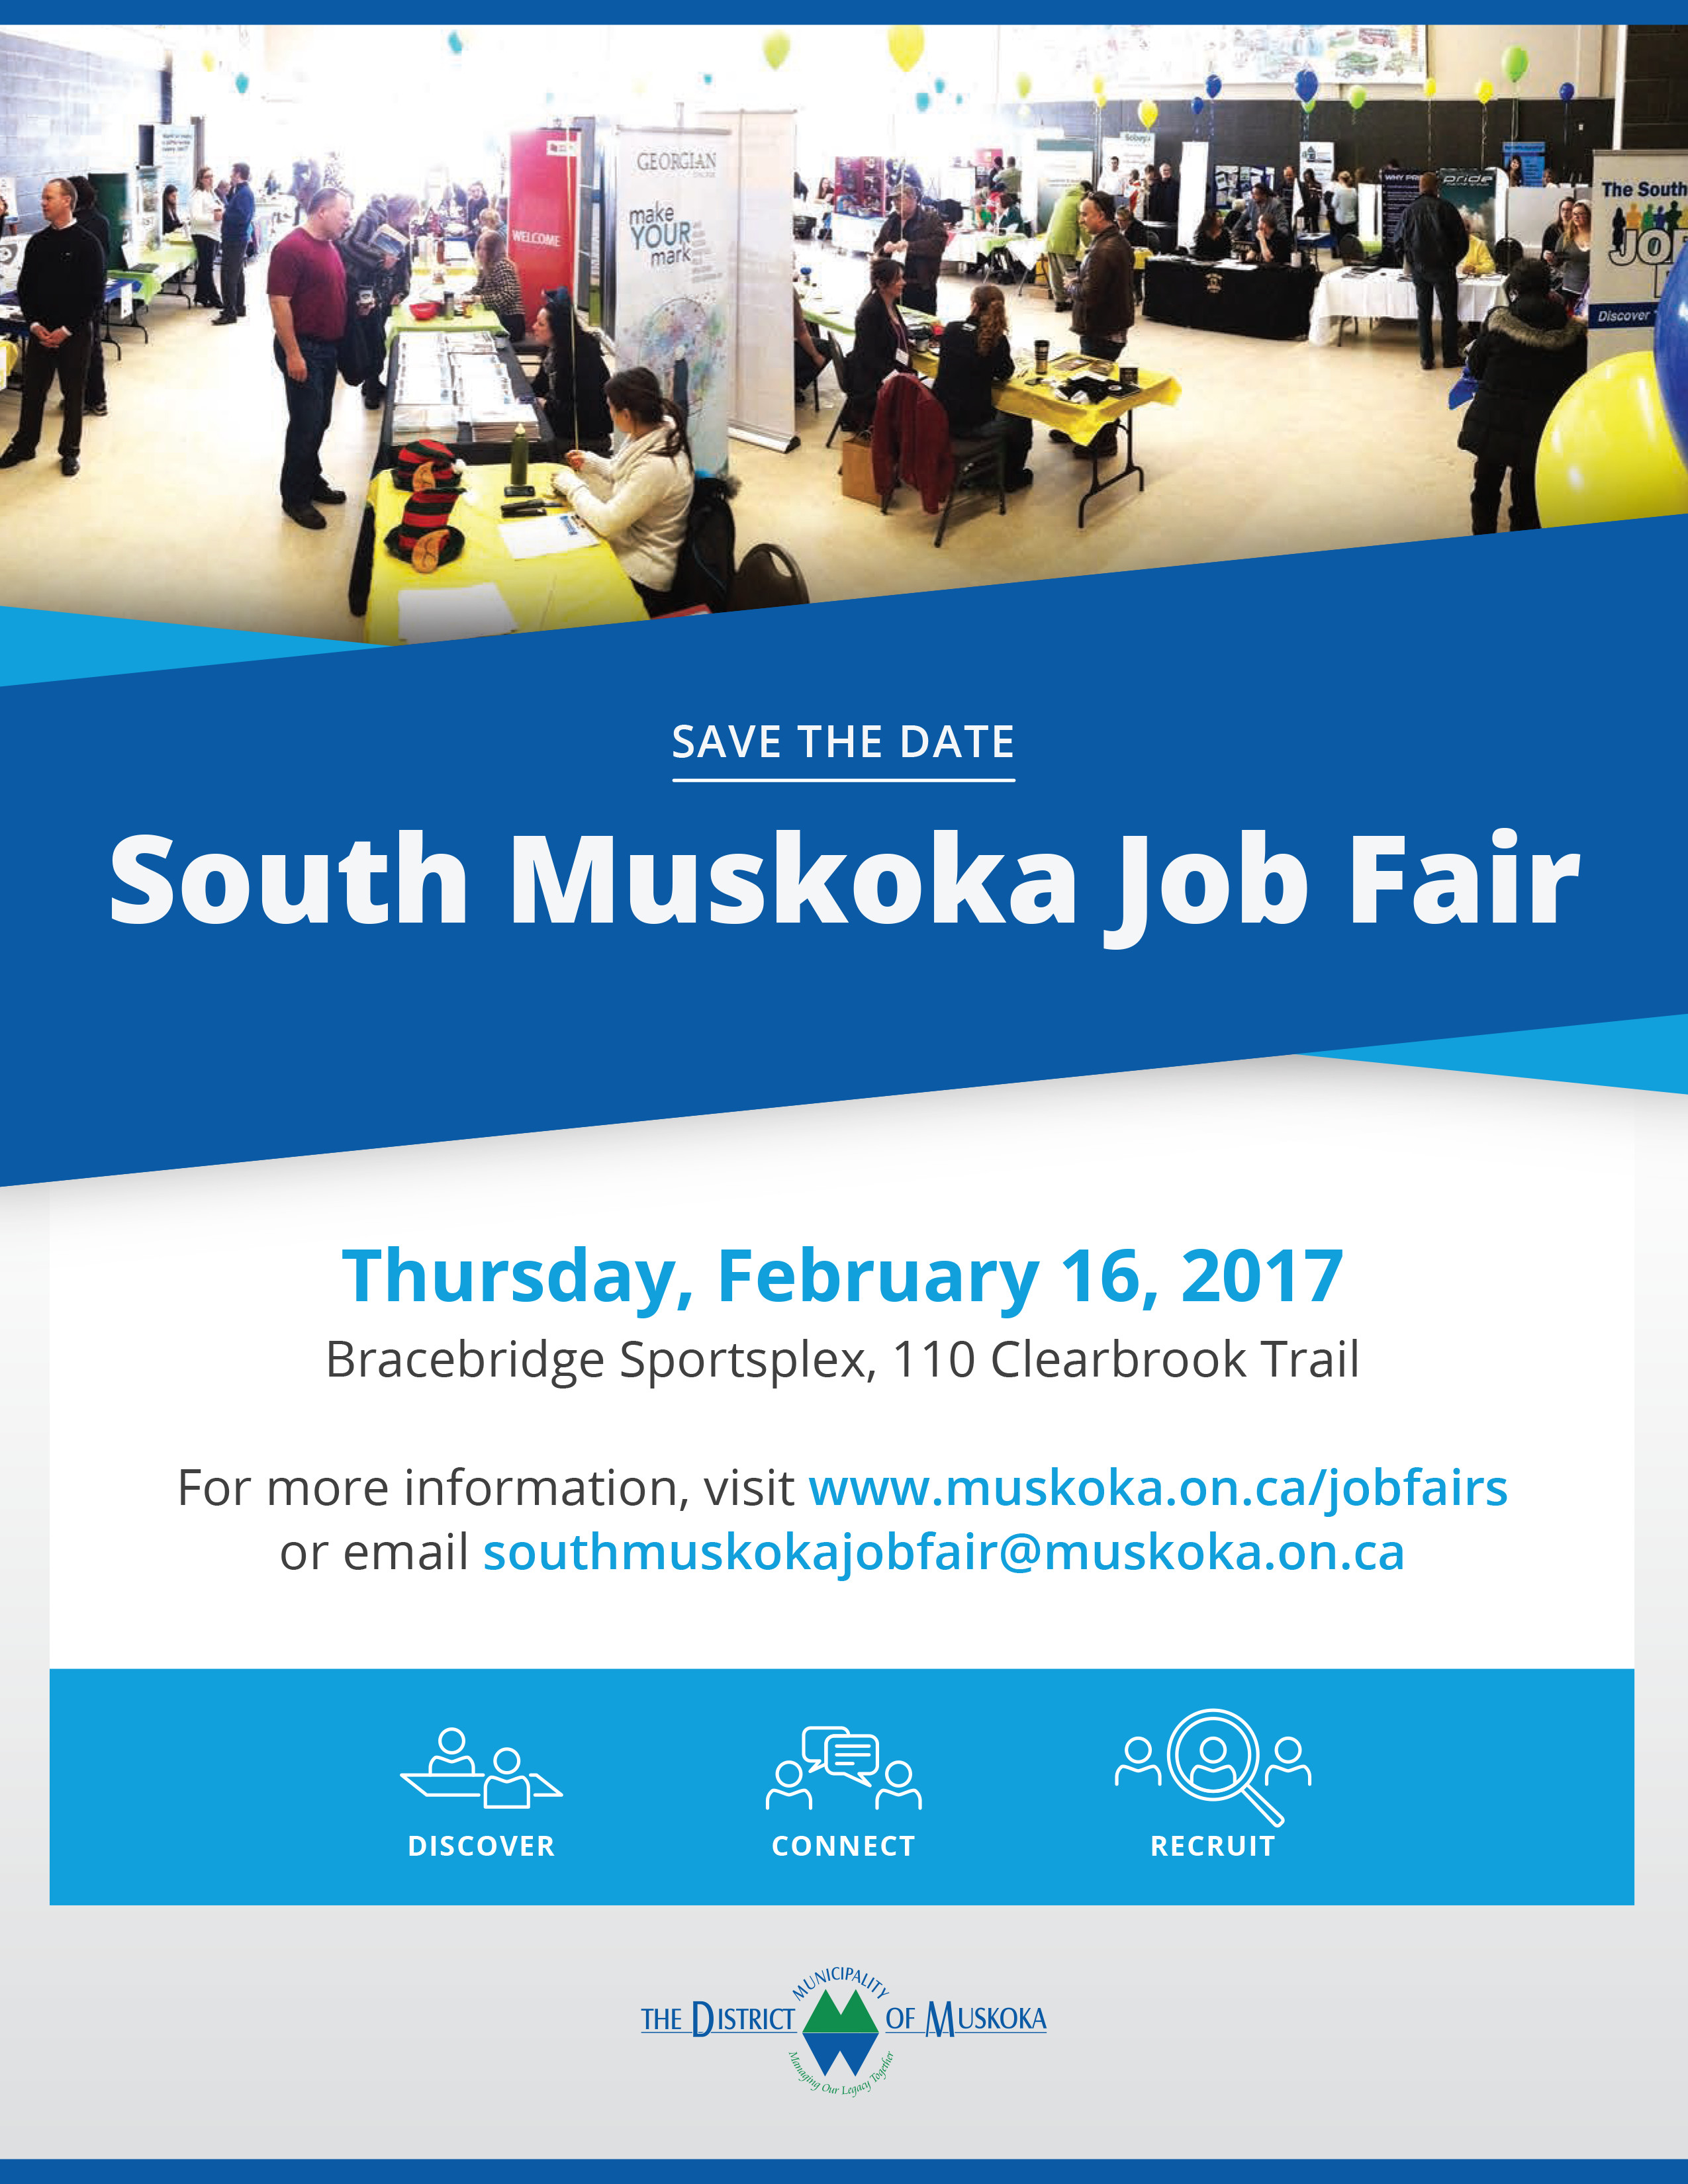 District-JobFair-SavetheDate-PosterWeb 2017